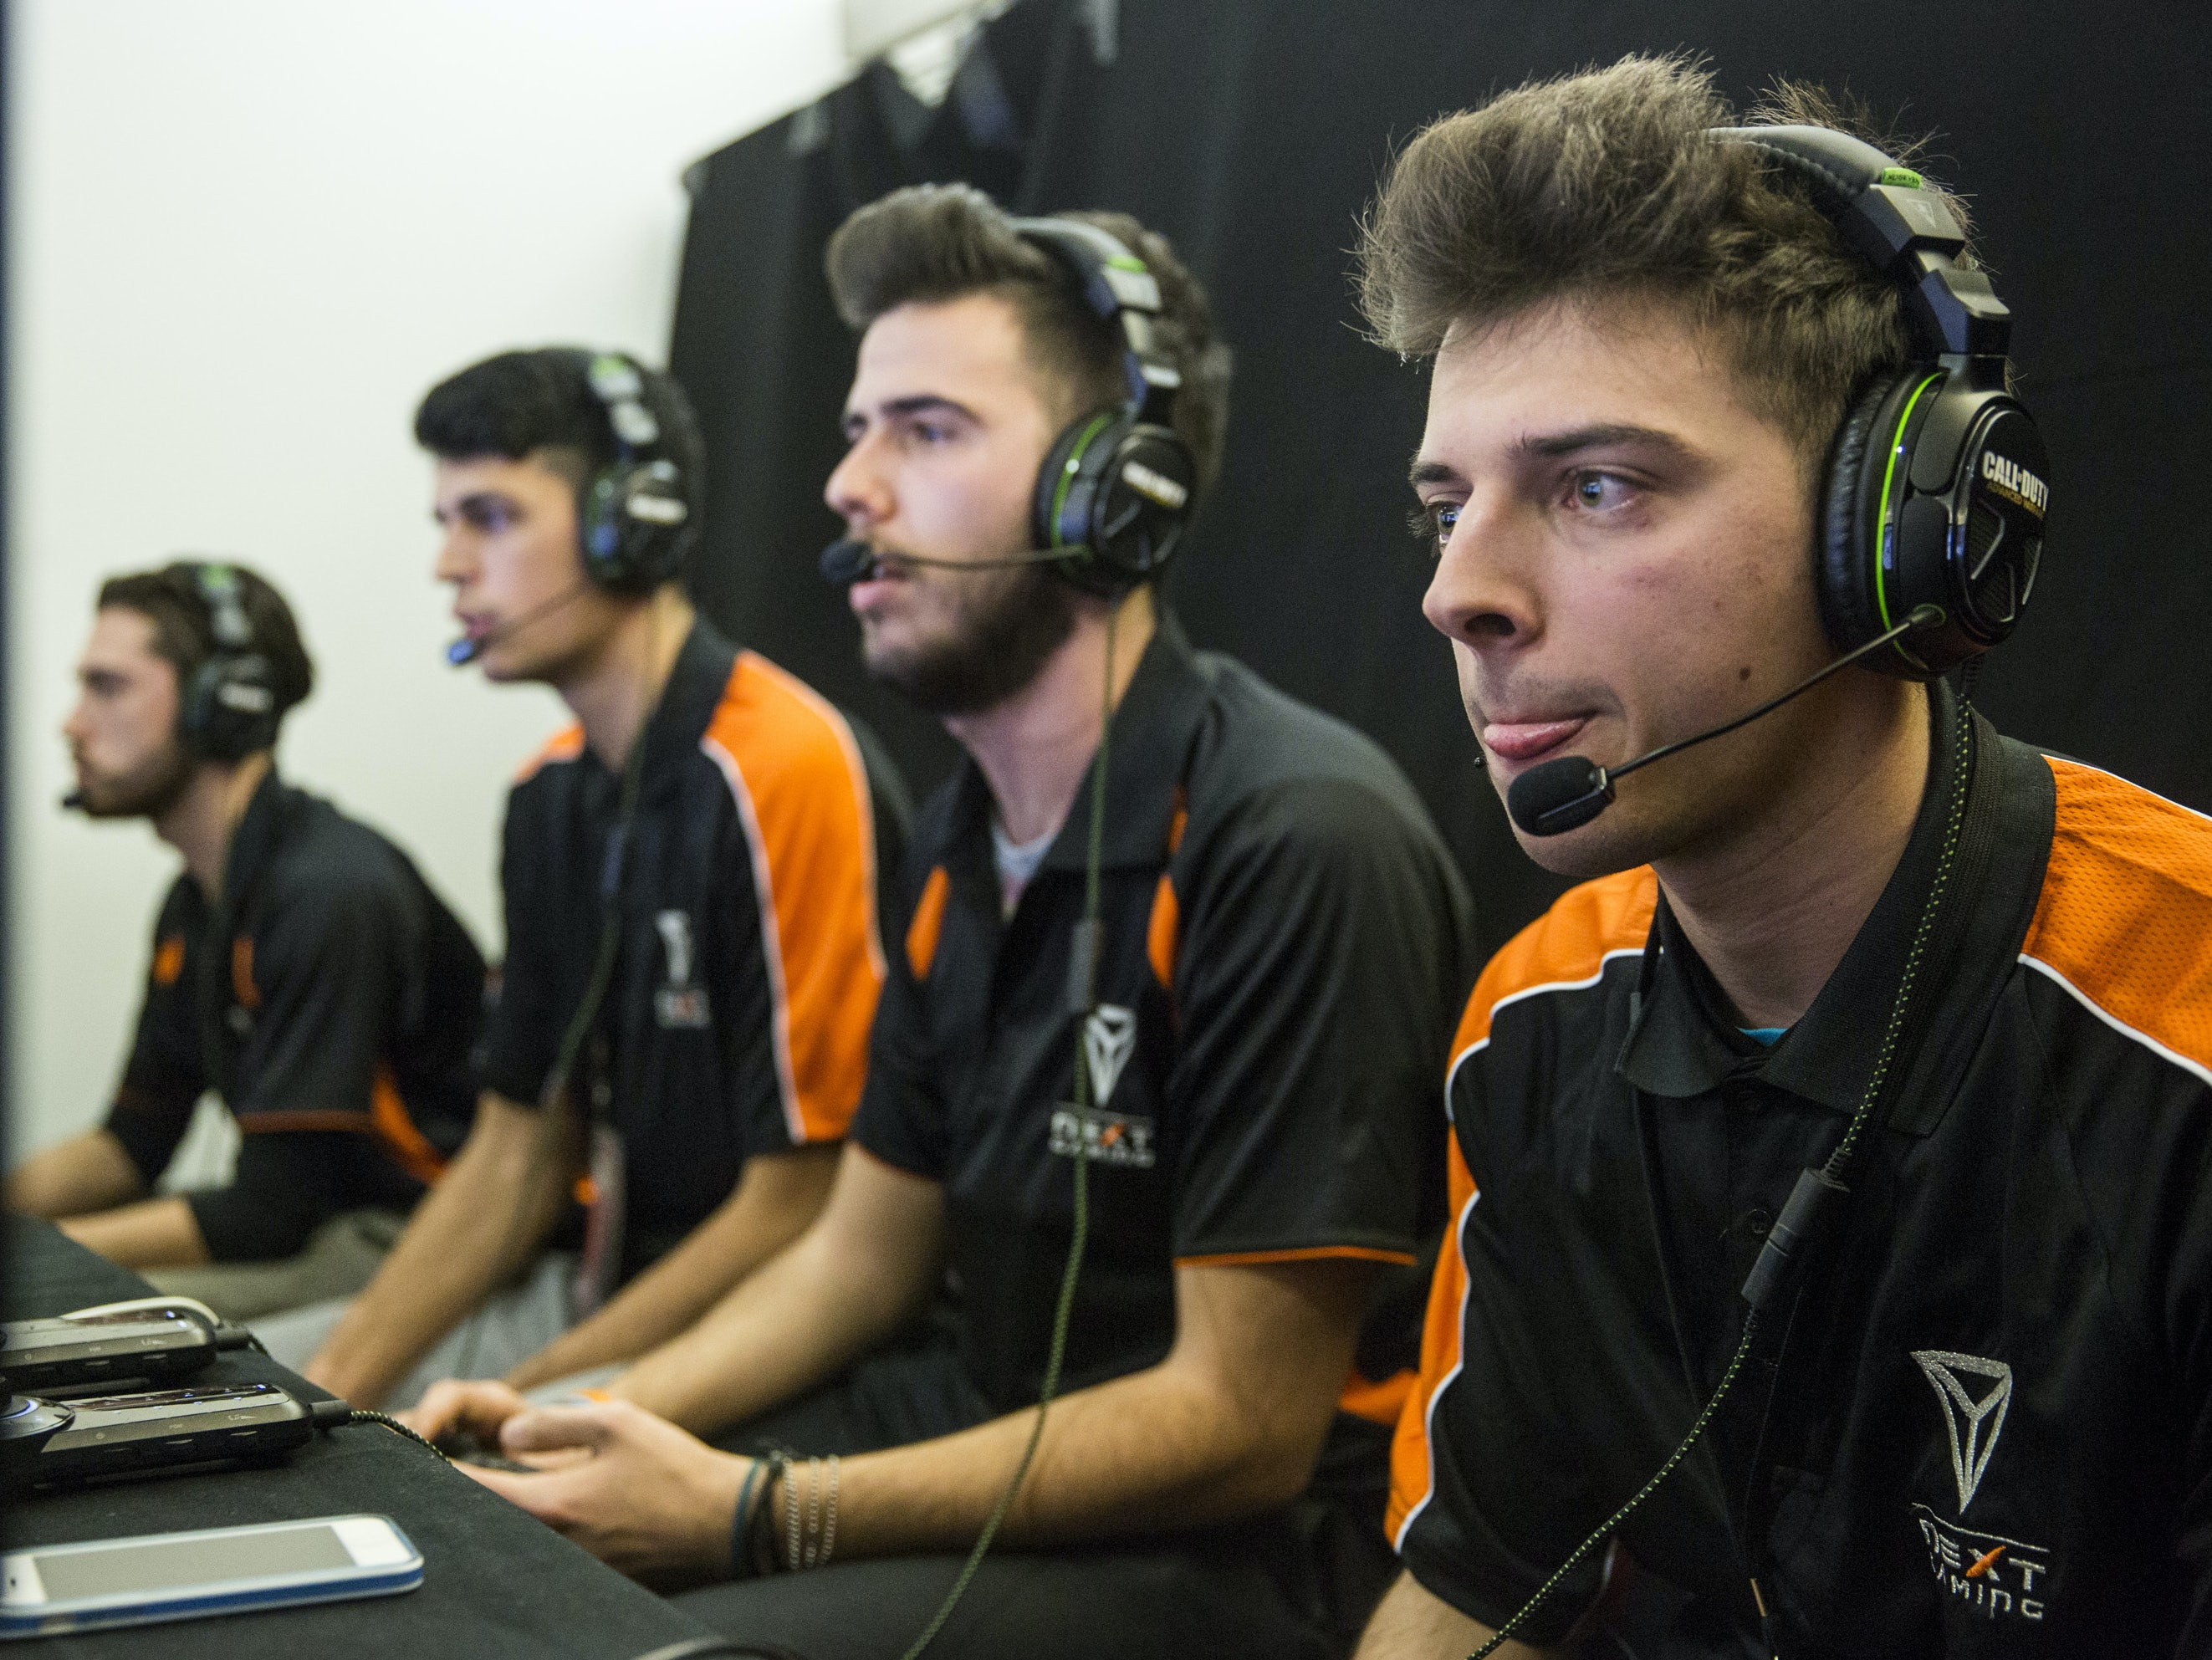 Gaming Is Now a Sport: E-Sports Begin Drug Testing